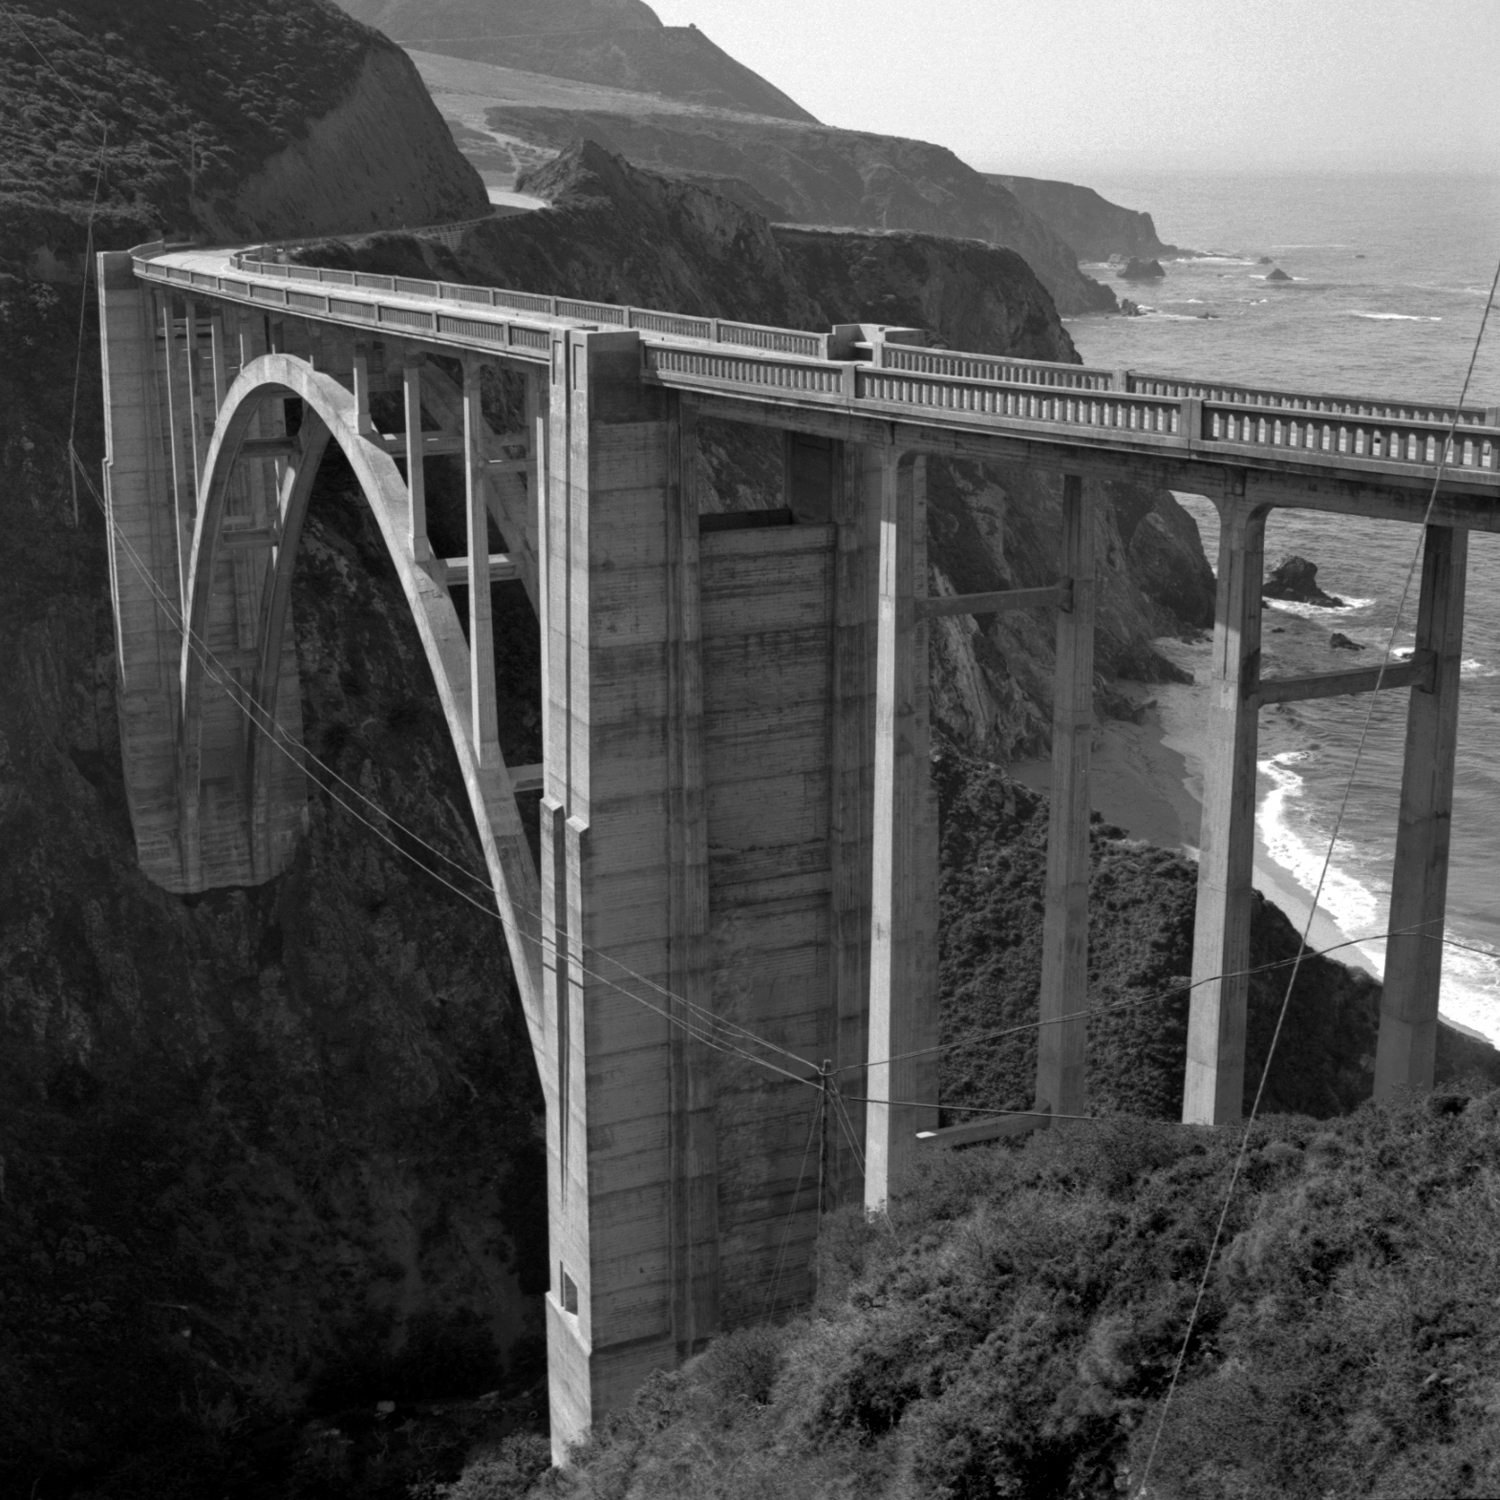 Bixby Bridge, Route 1, California